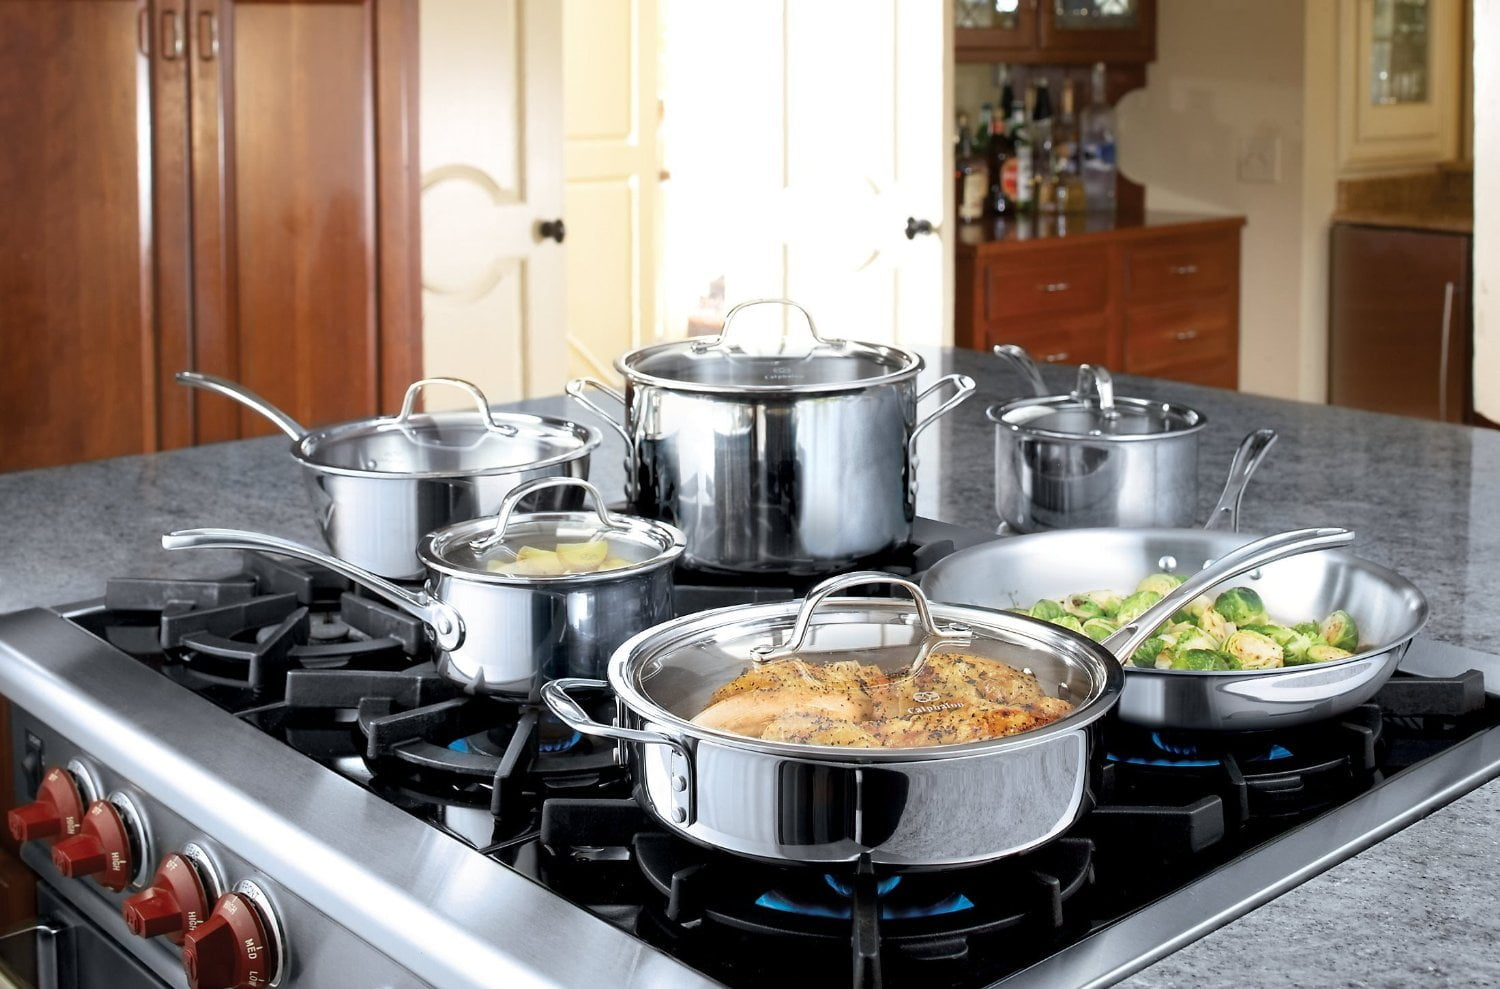 Calphalon Tri-Ply Stainless Steel Cookware Set Review2